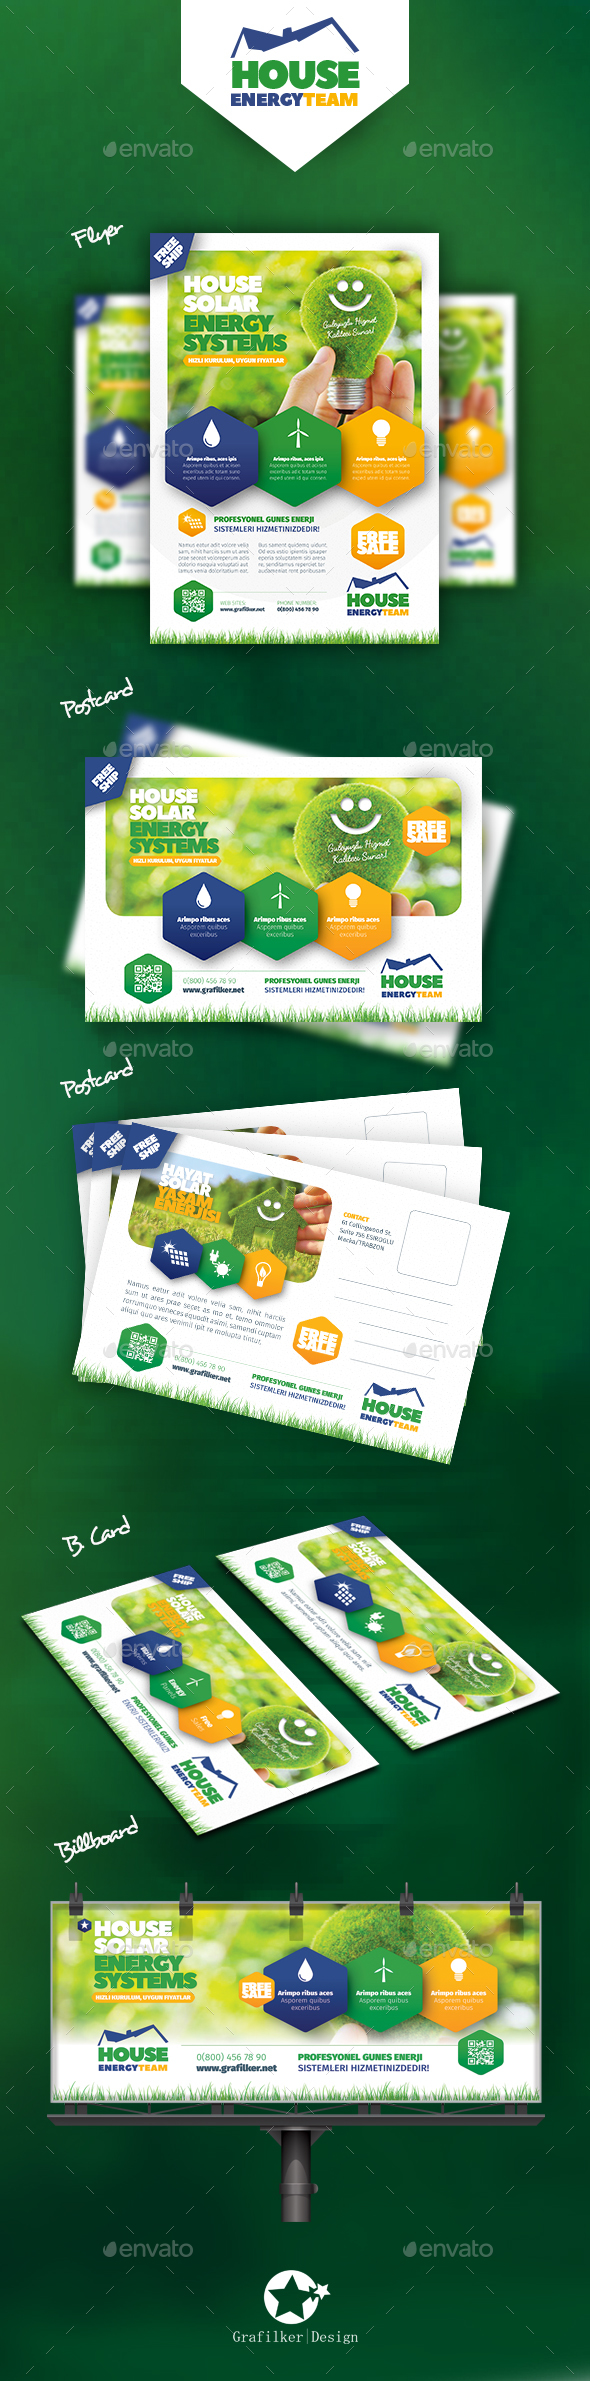 Solar Energy Bundle Templates - Corporate Flyers